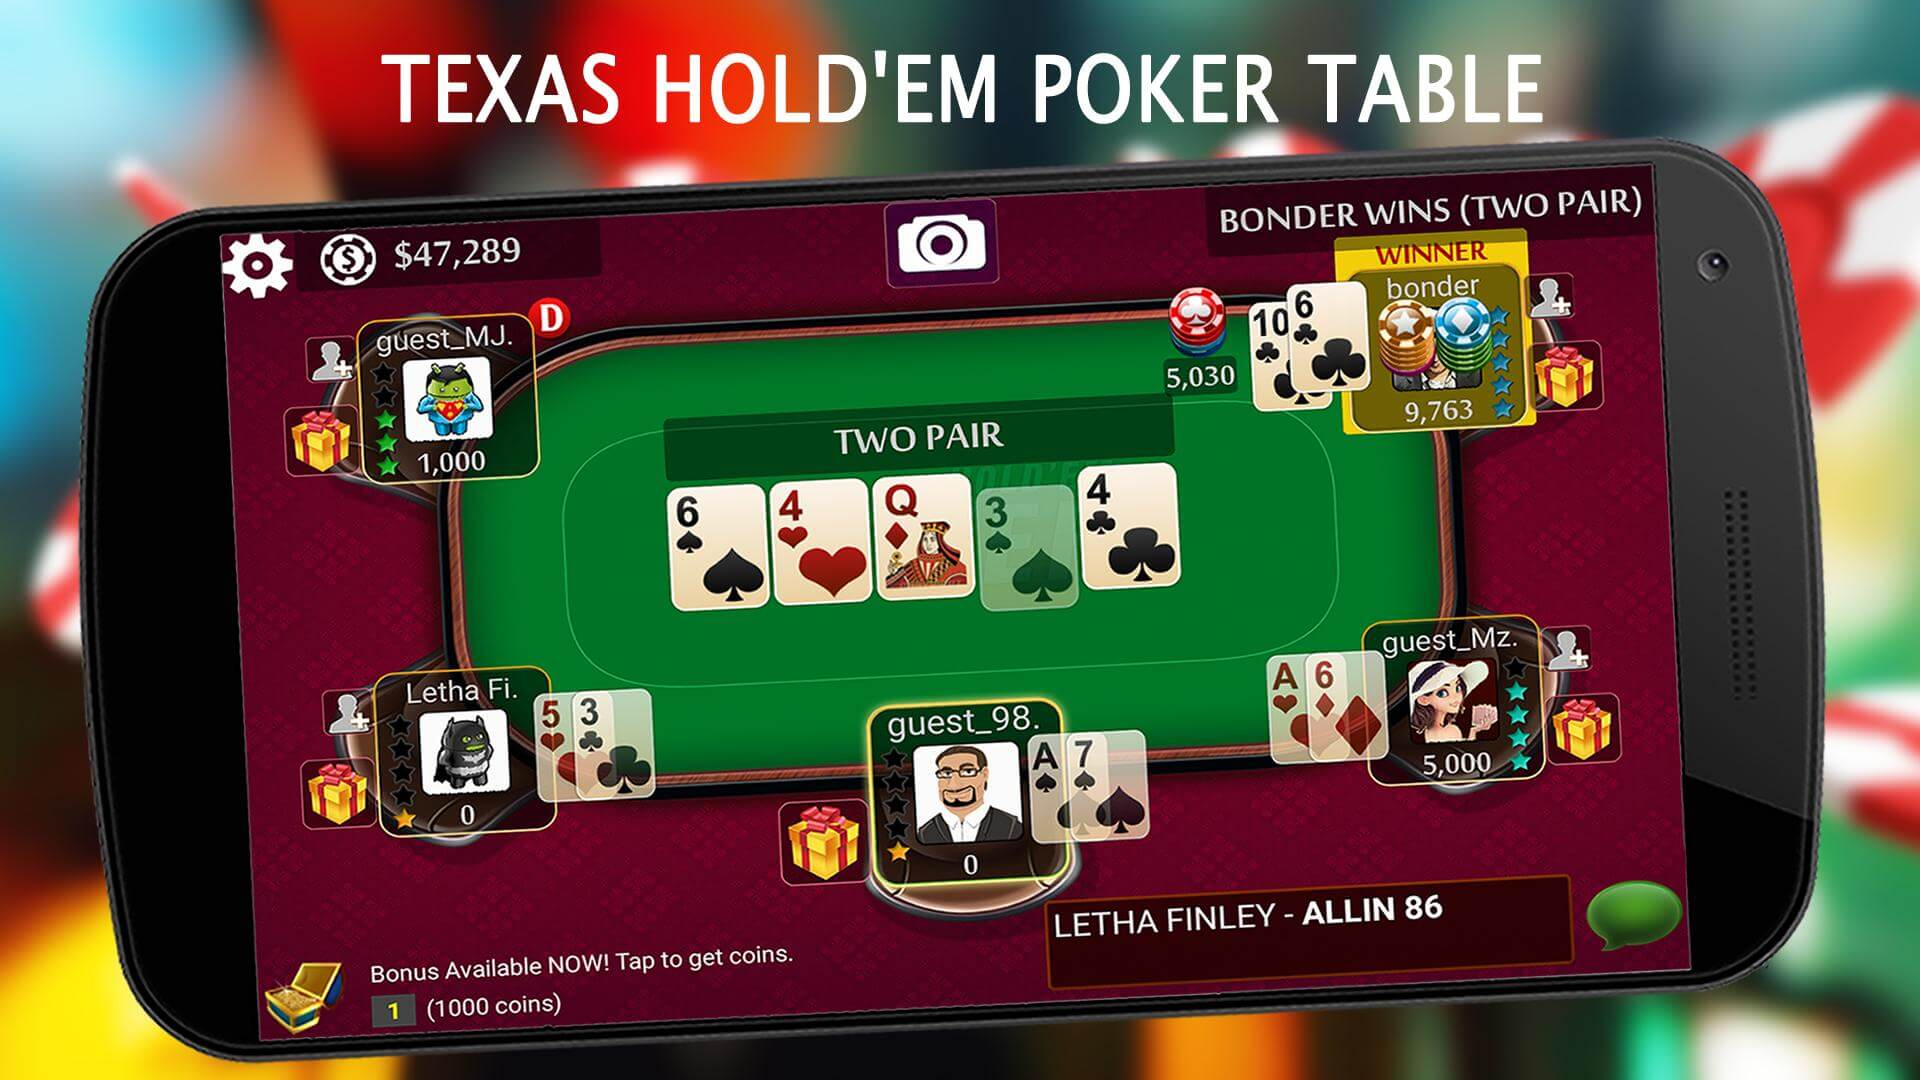 Texas Hold'em Poker rules